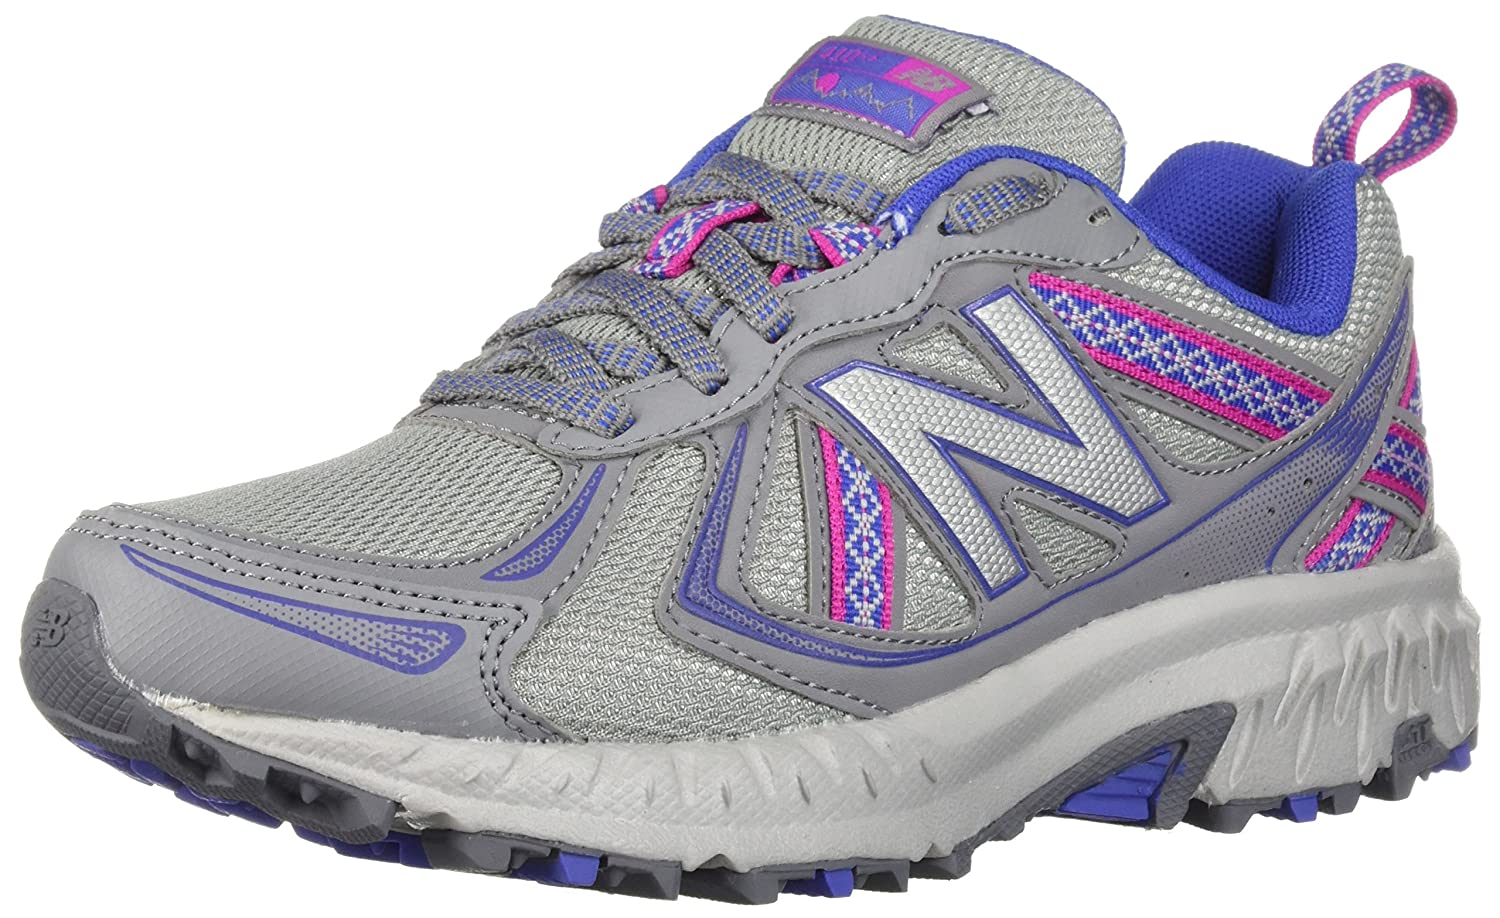 New Balance Women's WT410v5 Cushioning Trail Running Shoe B0751Q7NK5 6.5 B(M) US|Steel